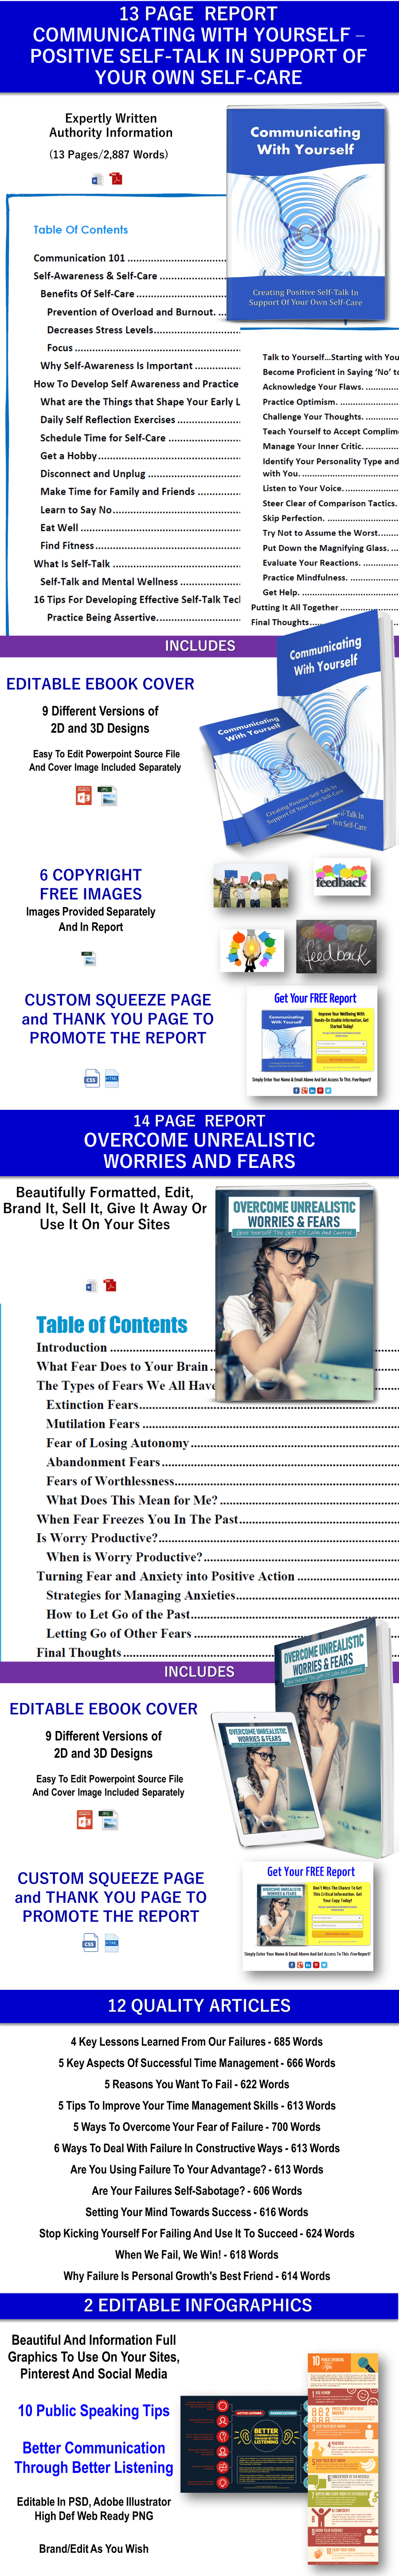 PERFECT YOUR COMMUNICATION SKILLS content with PLR Rights